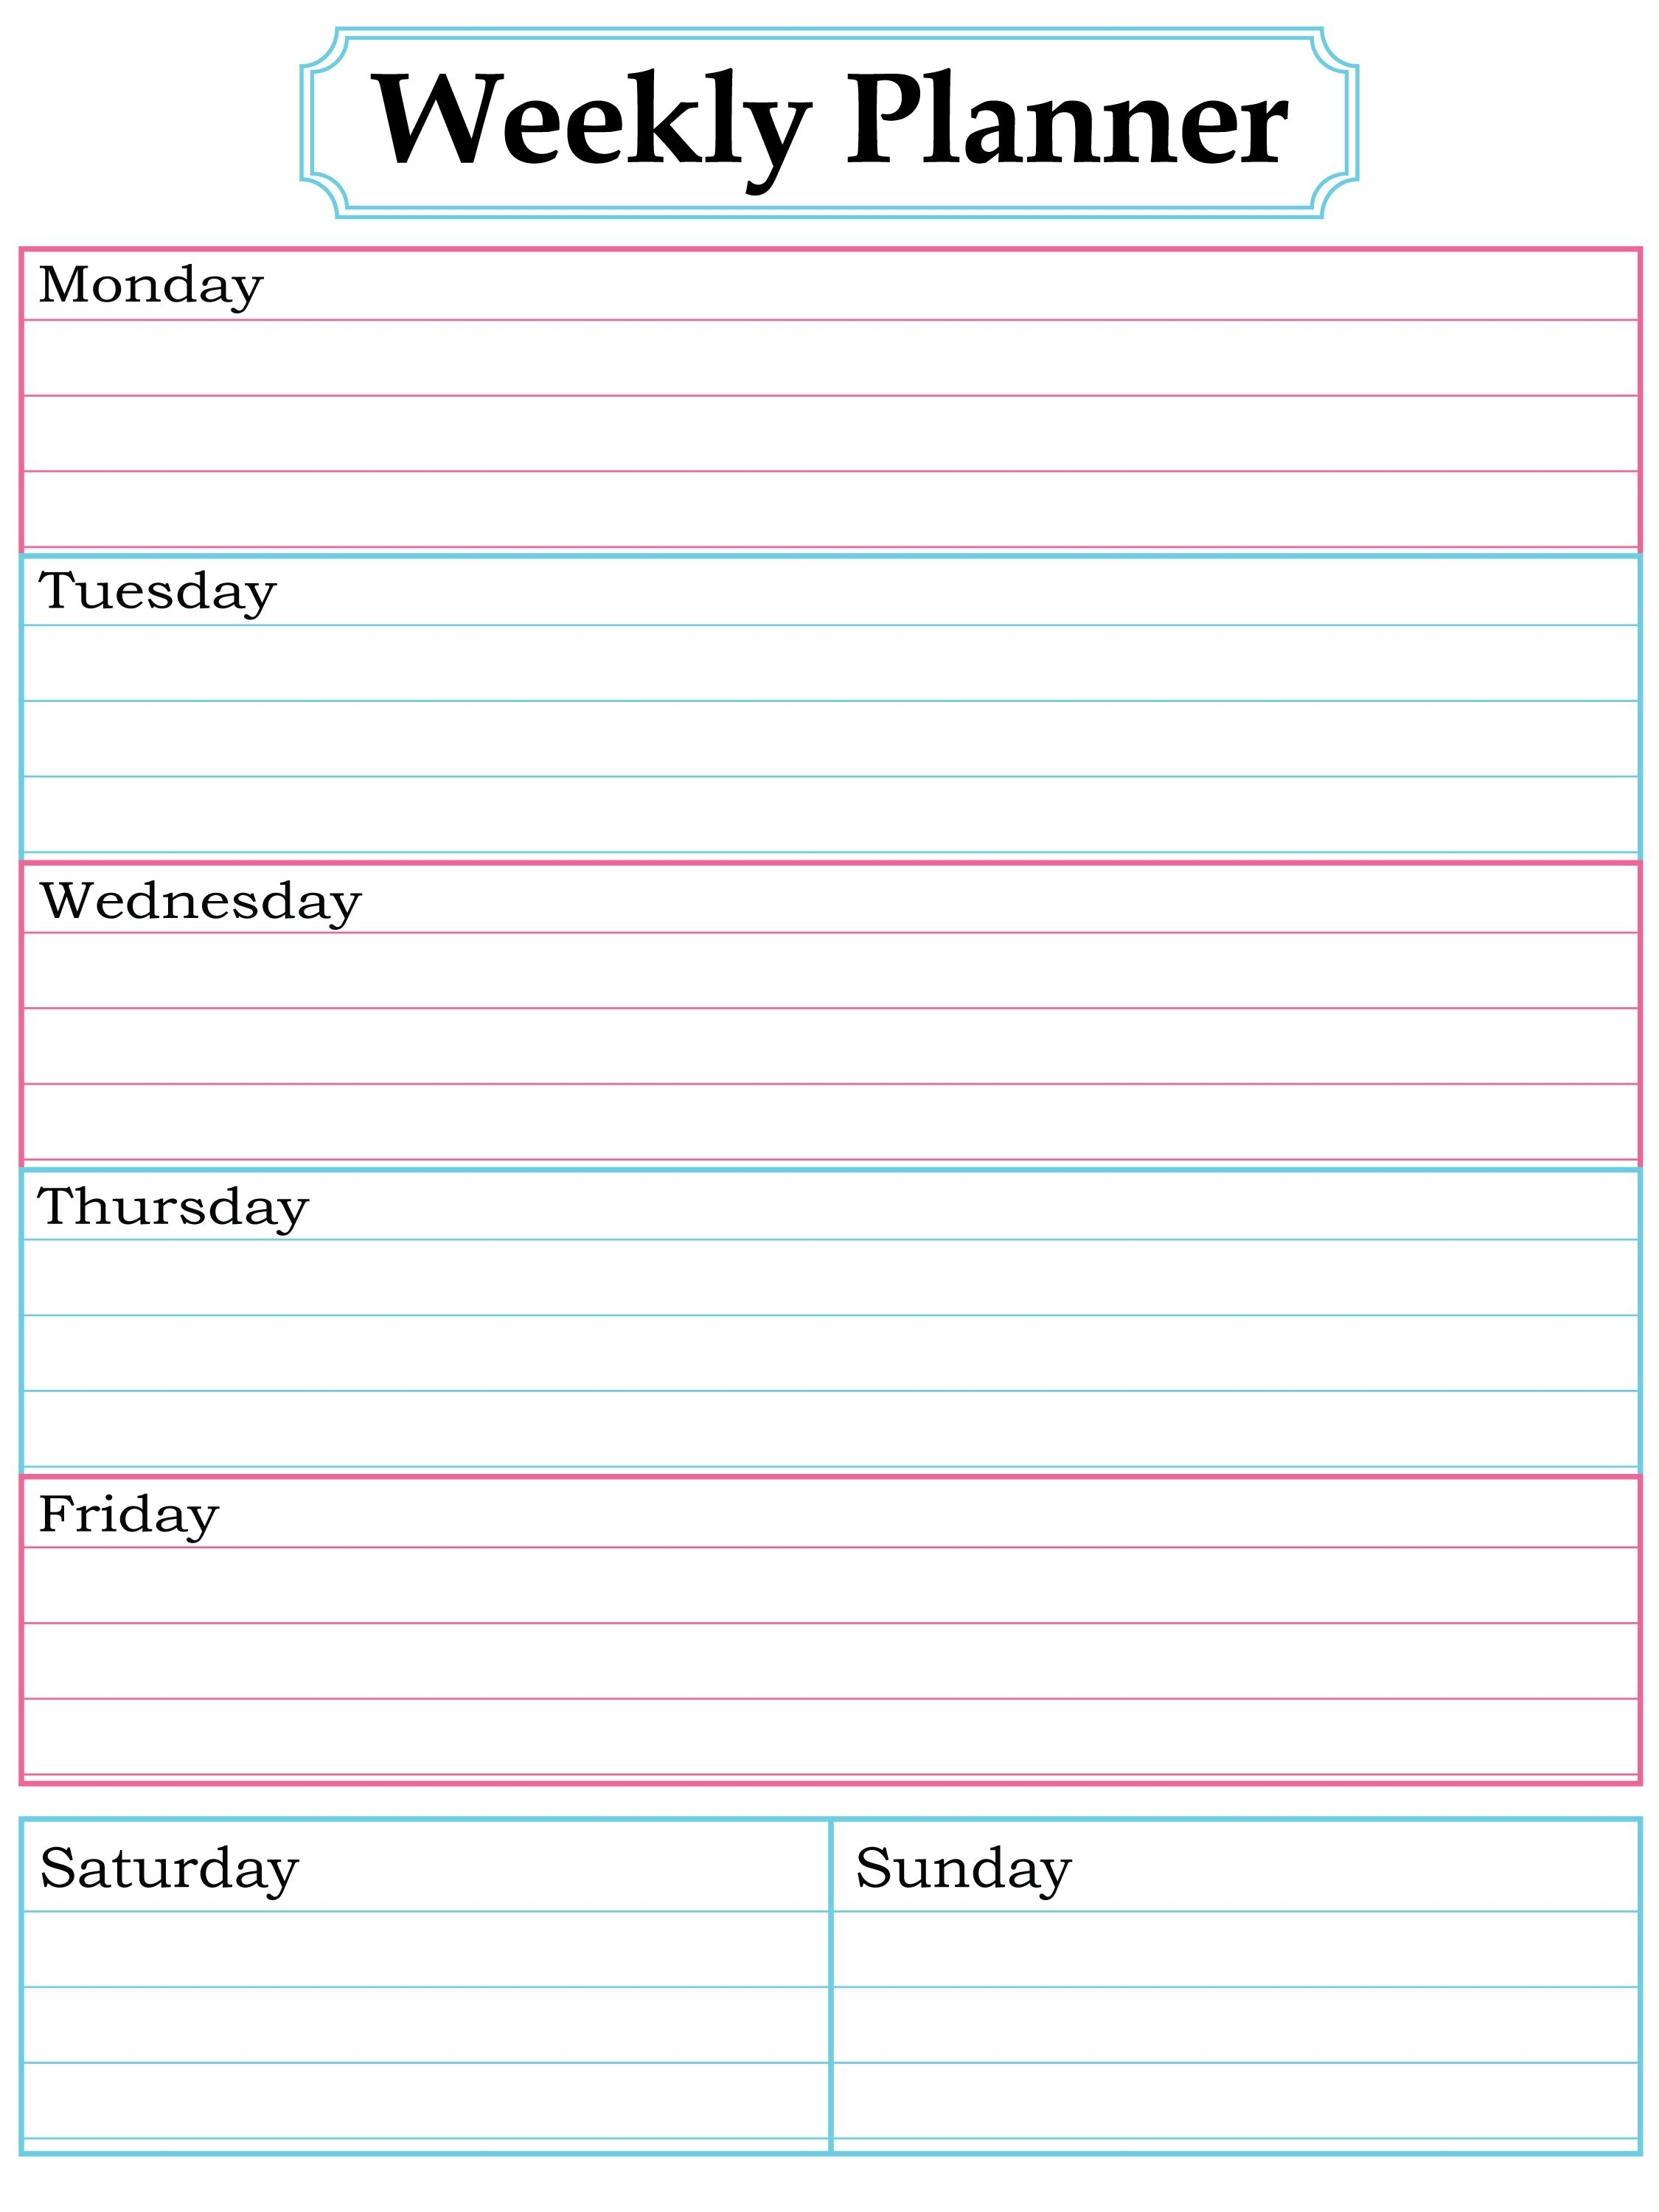 image about Weekly Agenda Printable identified as free of charge printable weekly planner (un)Instruction Weekly